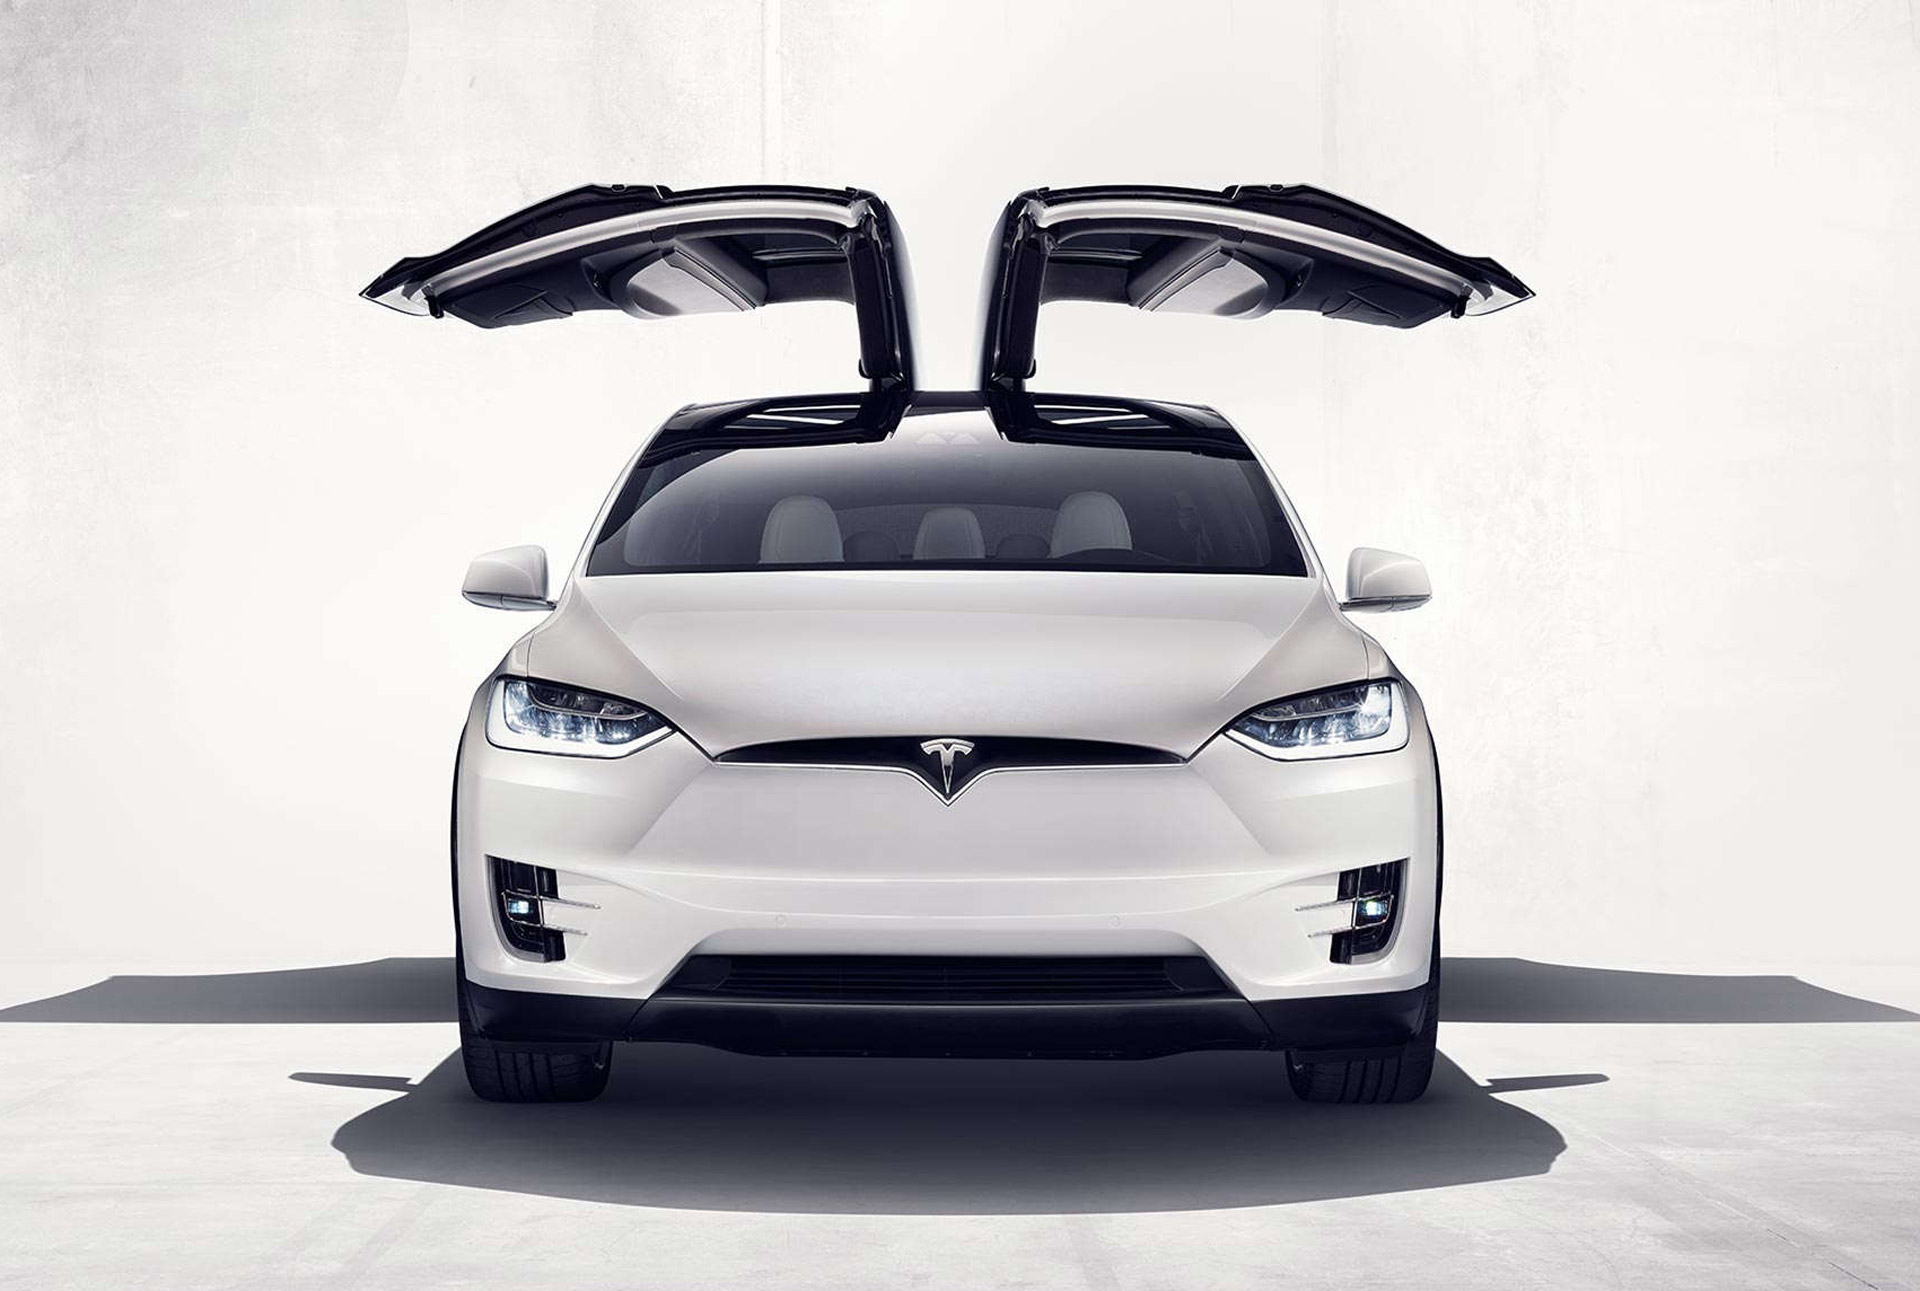 new tesla car release dateTesla Model X gets new 75D base version replacing 70D that was